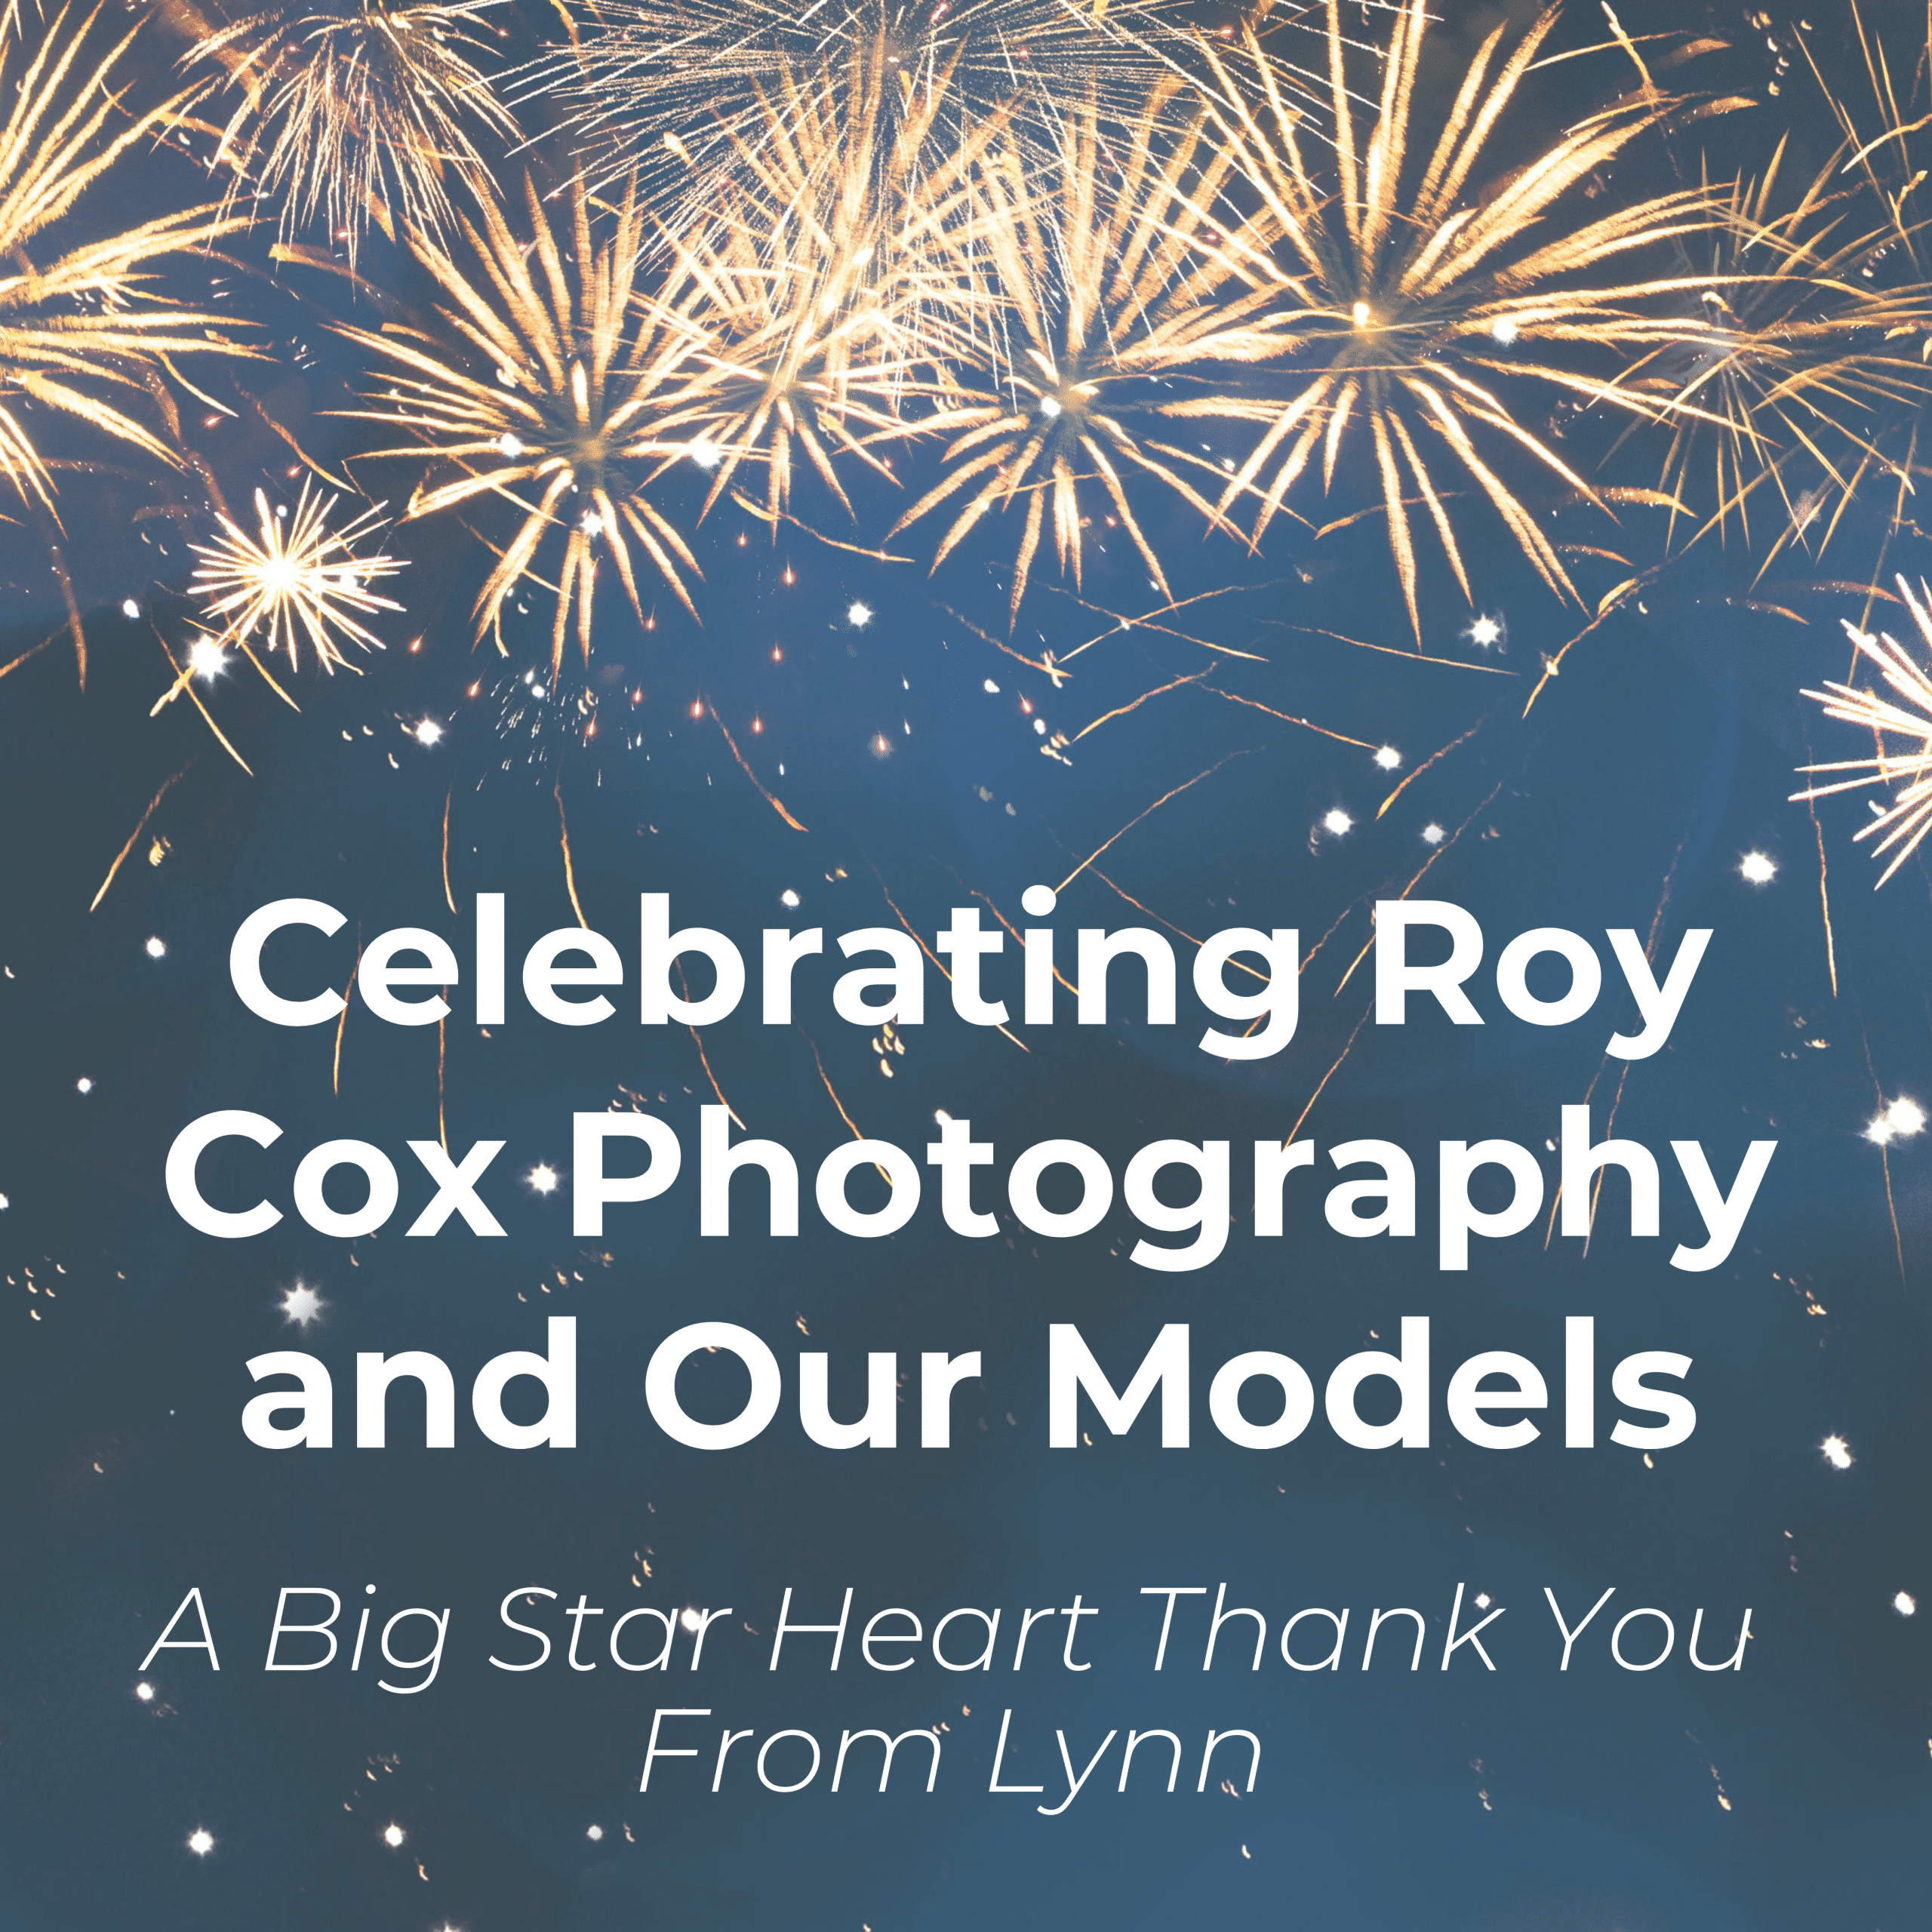 Celebrating Photographer Roy Cox and the models of Star Heart Collections